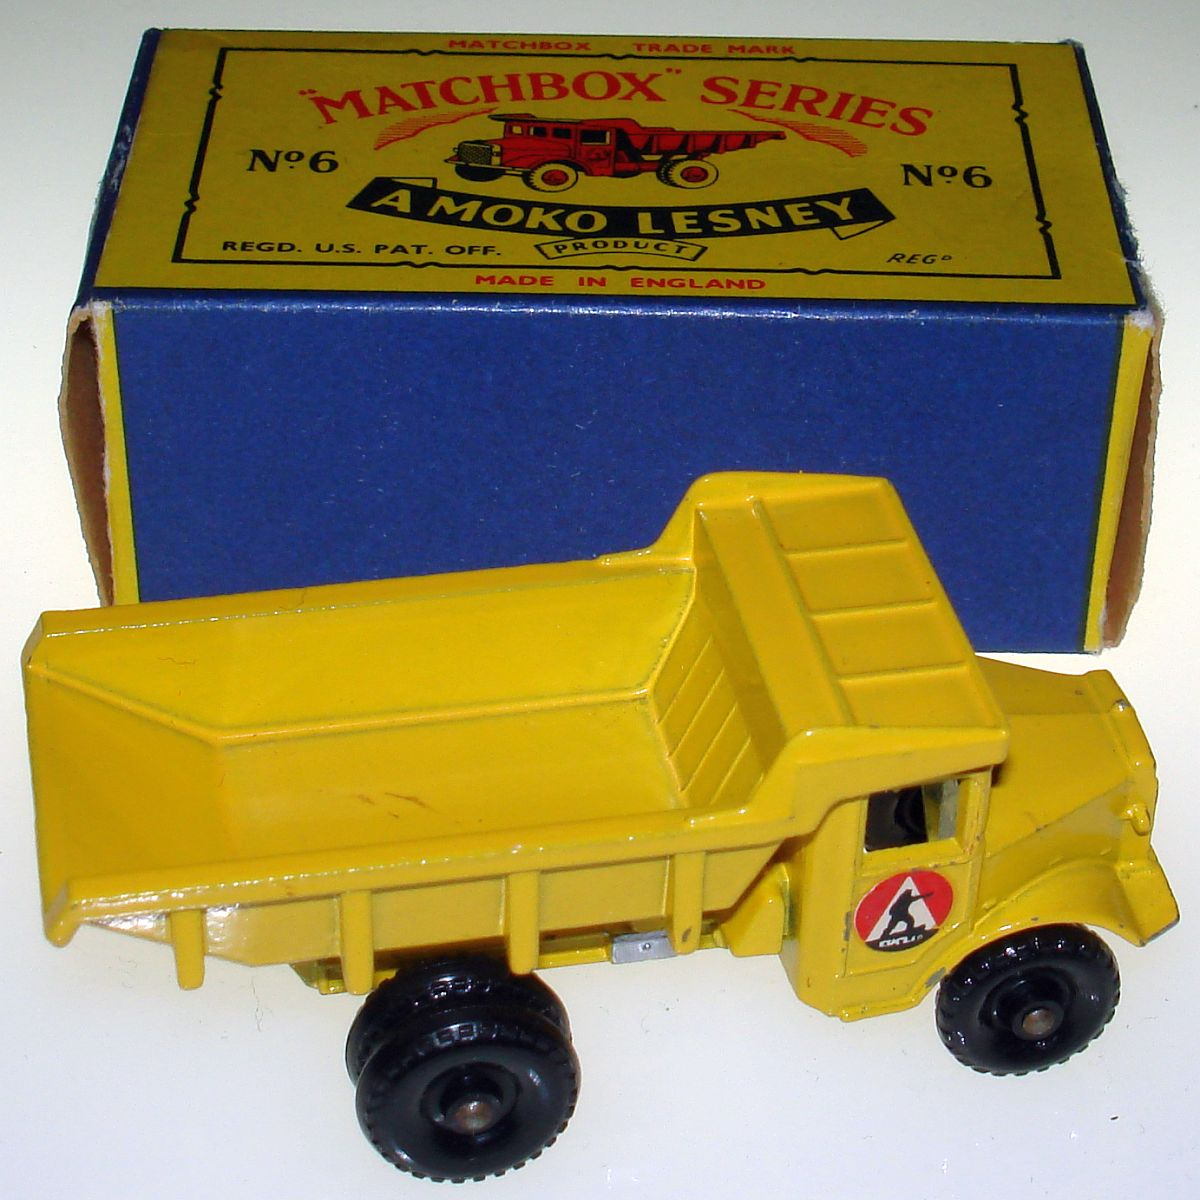 Vintage Matchbox Moko Lesney Black Wheel Quarry Truck 6 Box